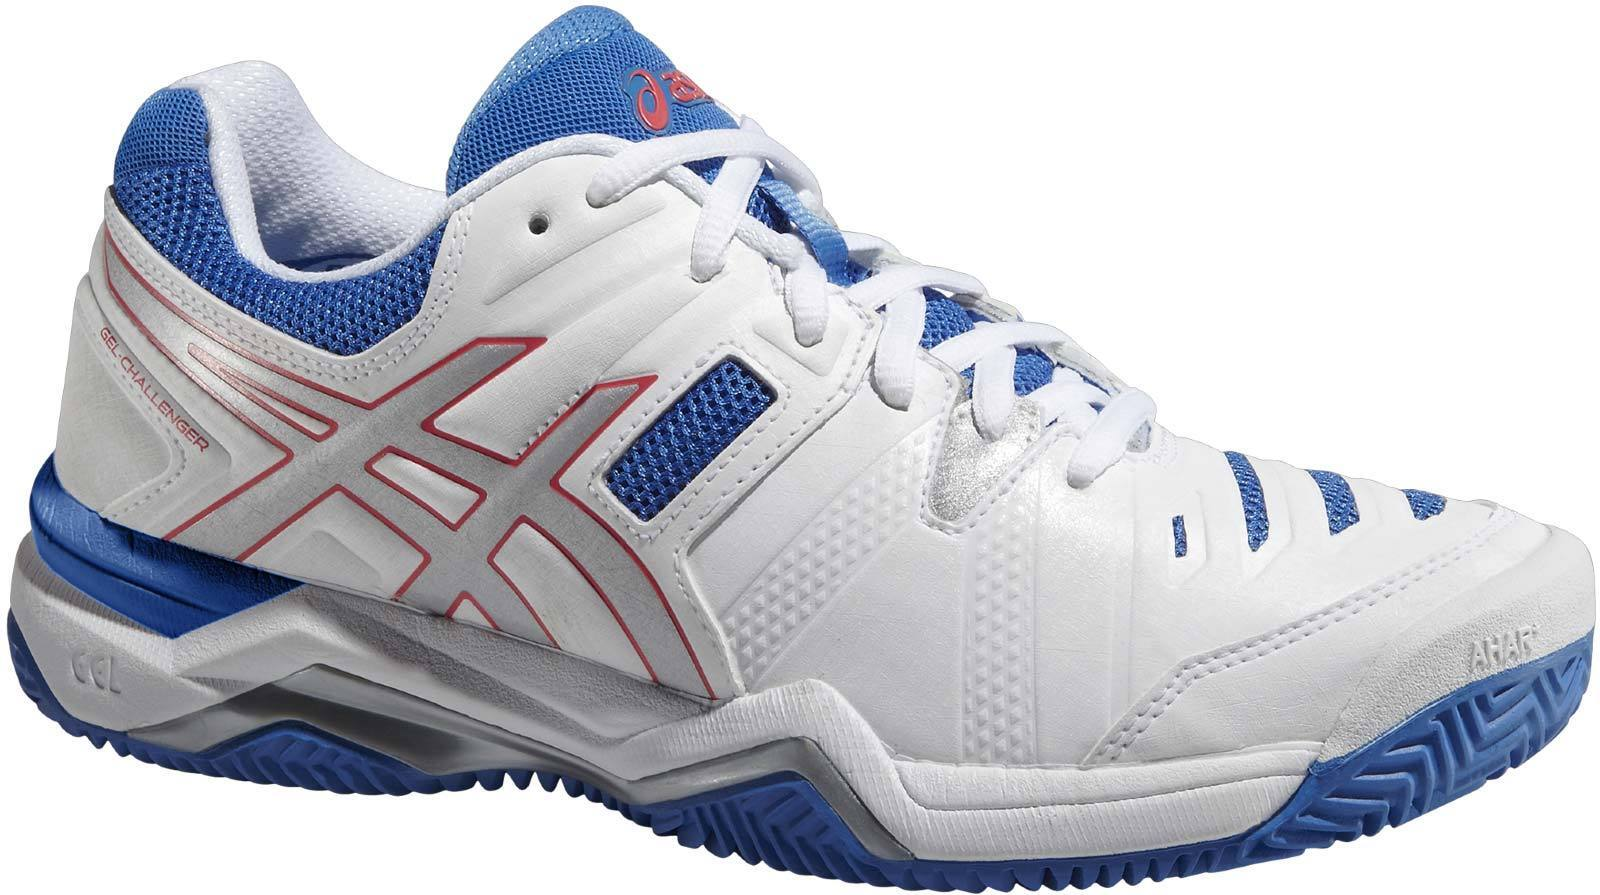 E555Y Womens asics Gel-Challenger 10 Clay Court Tennis shoes Trainers Size 7.5 8